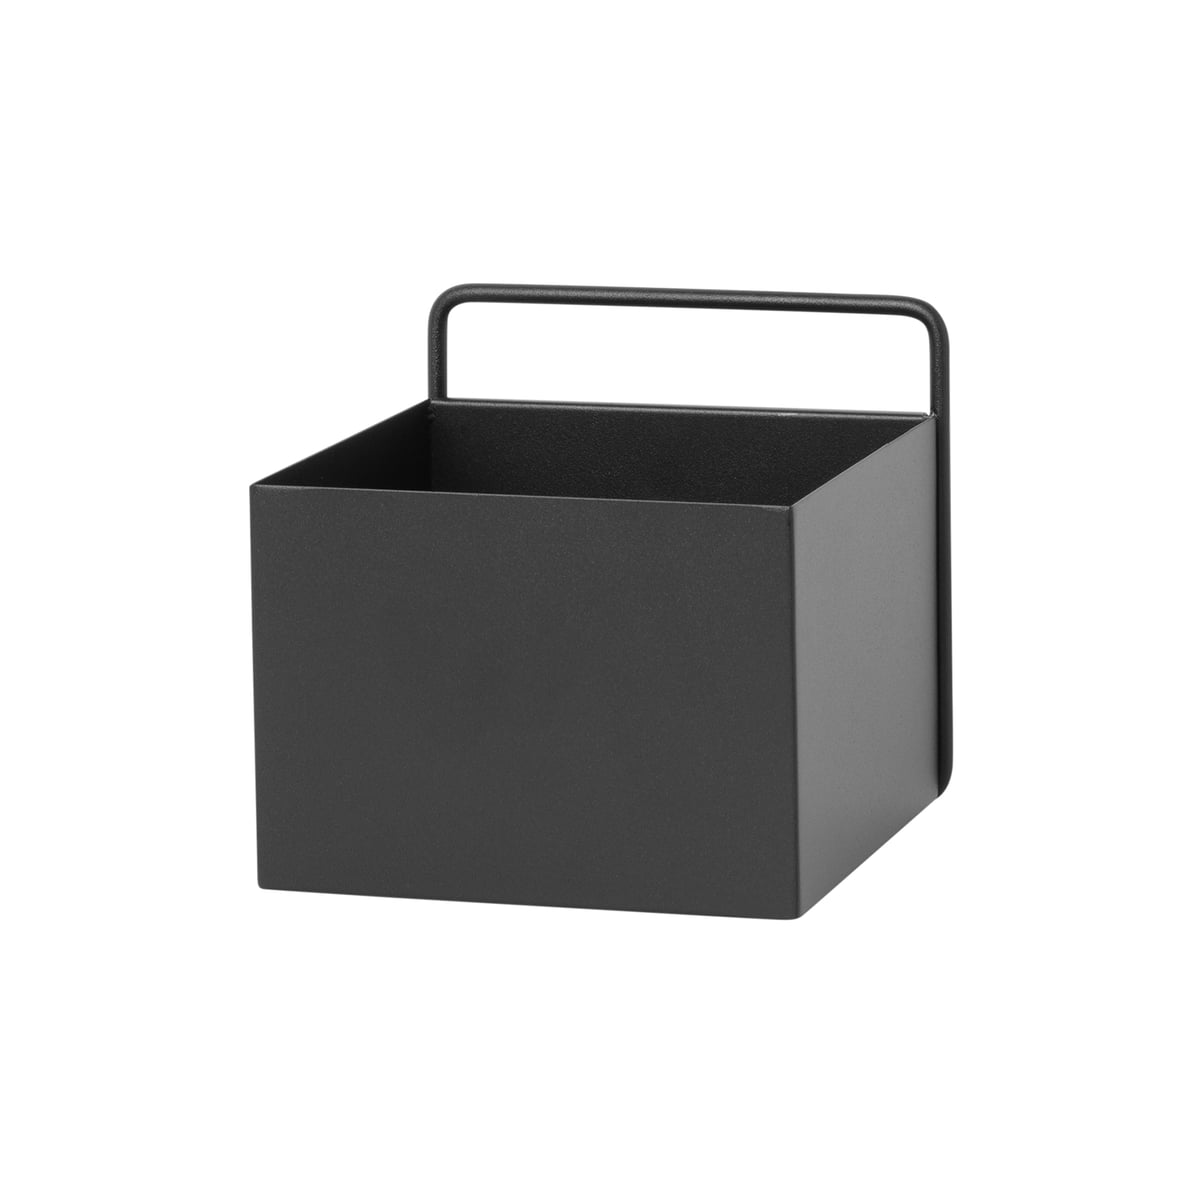 Wall box - Square, HOME DECOR, FERM, - Fabrica